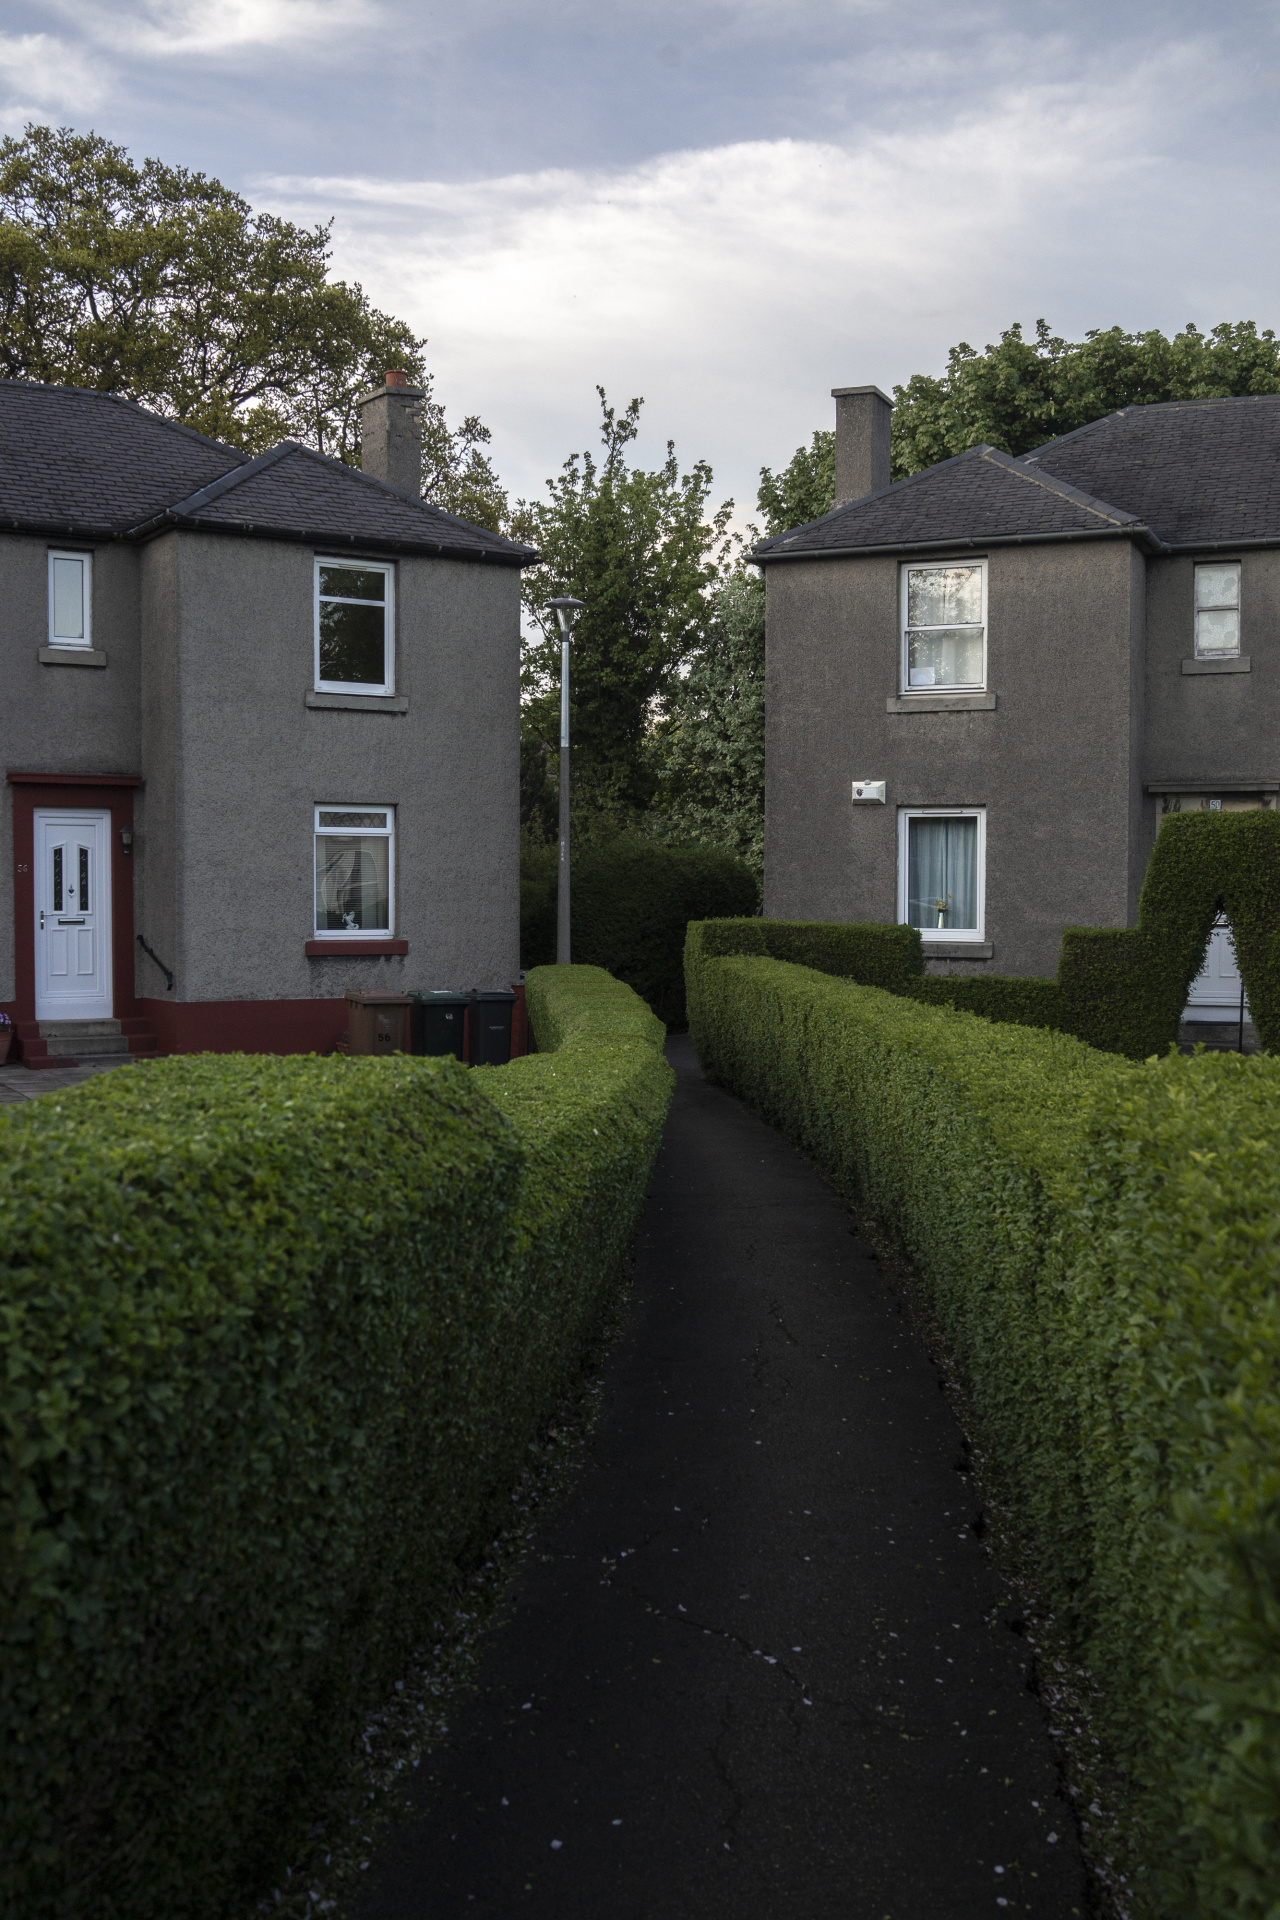 Kieran Dodds Photography Down the Line podcast, July 2020 An avenue of hedges between houses in Warriston, Edinburgh.   At a time of national crisis, the humble border hedge took on a renewed sense of purpose, its presence a vivid metaphor for self-isolation and social distancing. This series of suburban landscapes began n March 2020 during the permitted daily lockdown excursions in the 'bungalow belt'  of Edinburgh. Green space in cities brings many benefits for citizen's mental and physical health. As well as privacy, border hedges provide cover for nesting birds and reducing wind shear to give shelter to plants.